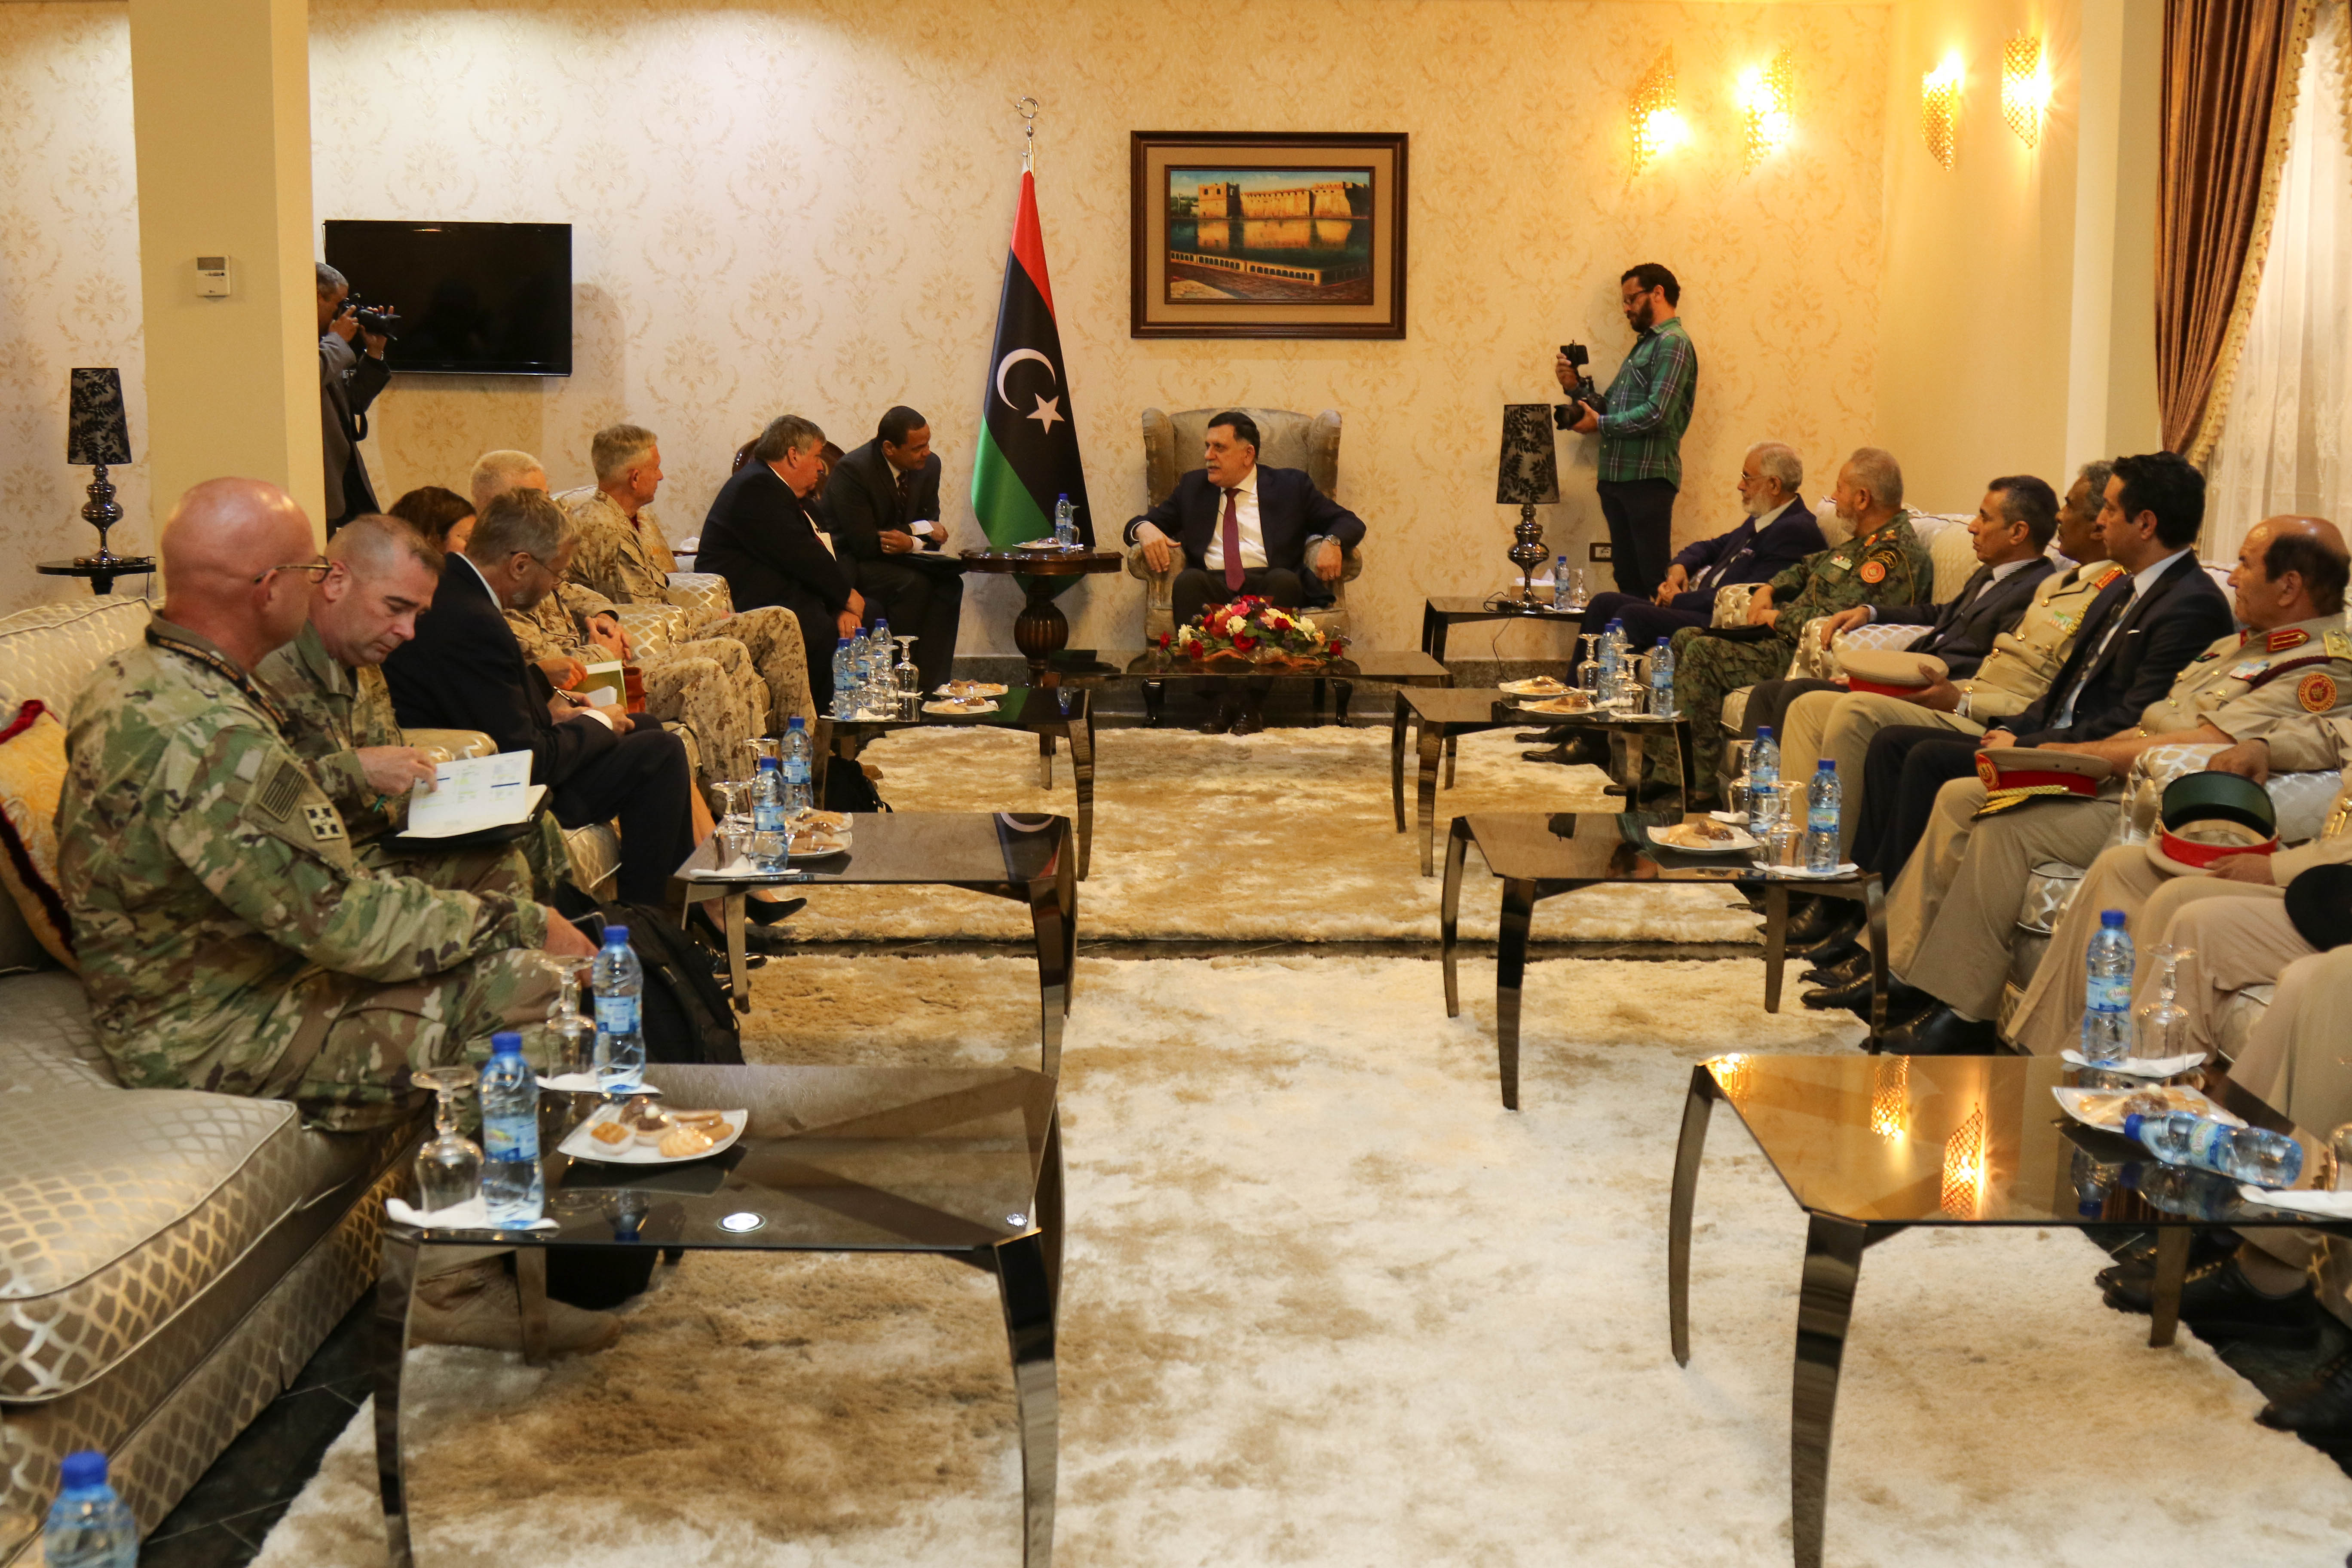 U.S. Marine Corps Gen. Thomas D. Waldhauser, Commander, U.S. Africa Command, Amb. Peter Bodde, U.S. Ambassador to Libya, meets with Fayez al-Sarraj the Prime Minister of Libya's Unity Government, and other government officials during a recent visit to Tripoli, Libya May 23, 2017. This marks the first time a a high ranking U.S. military official has been in Libya since 2014.